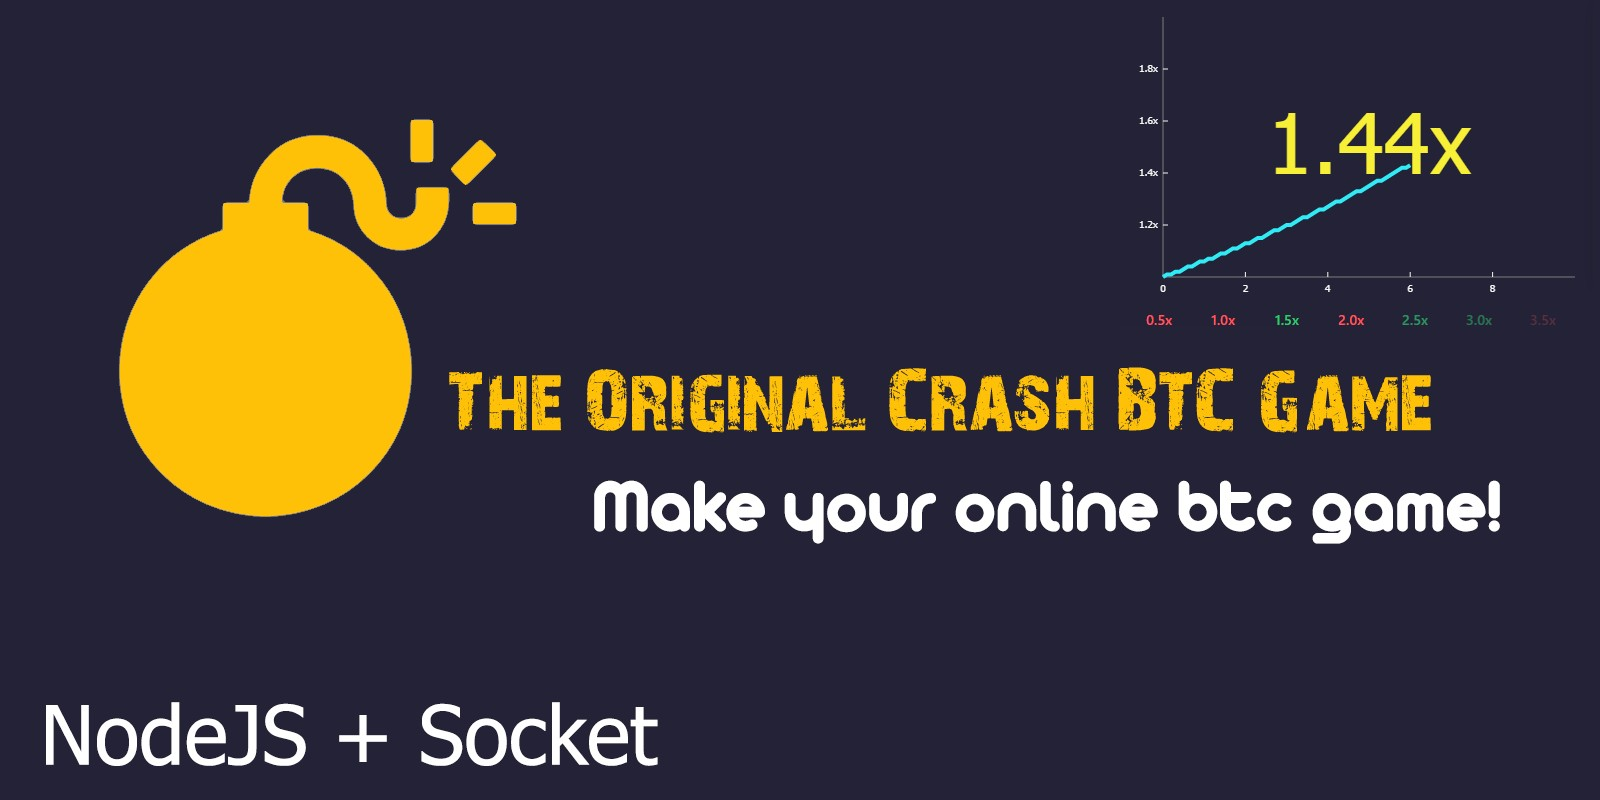 Crash BTC Game NodeJS